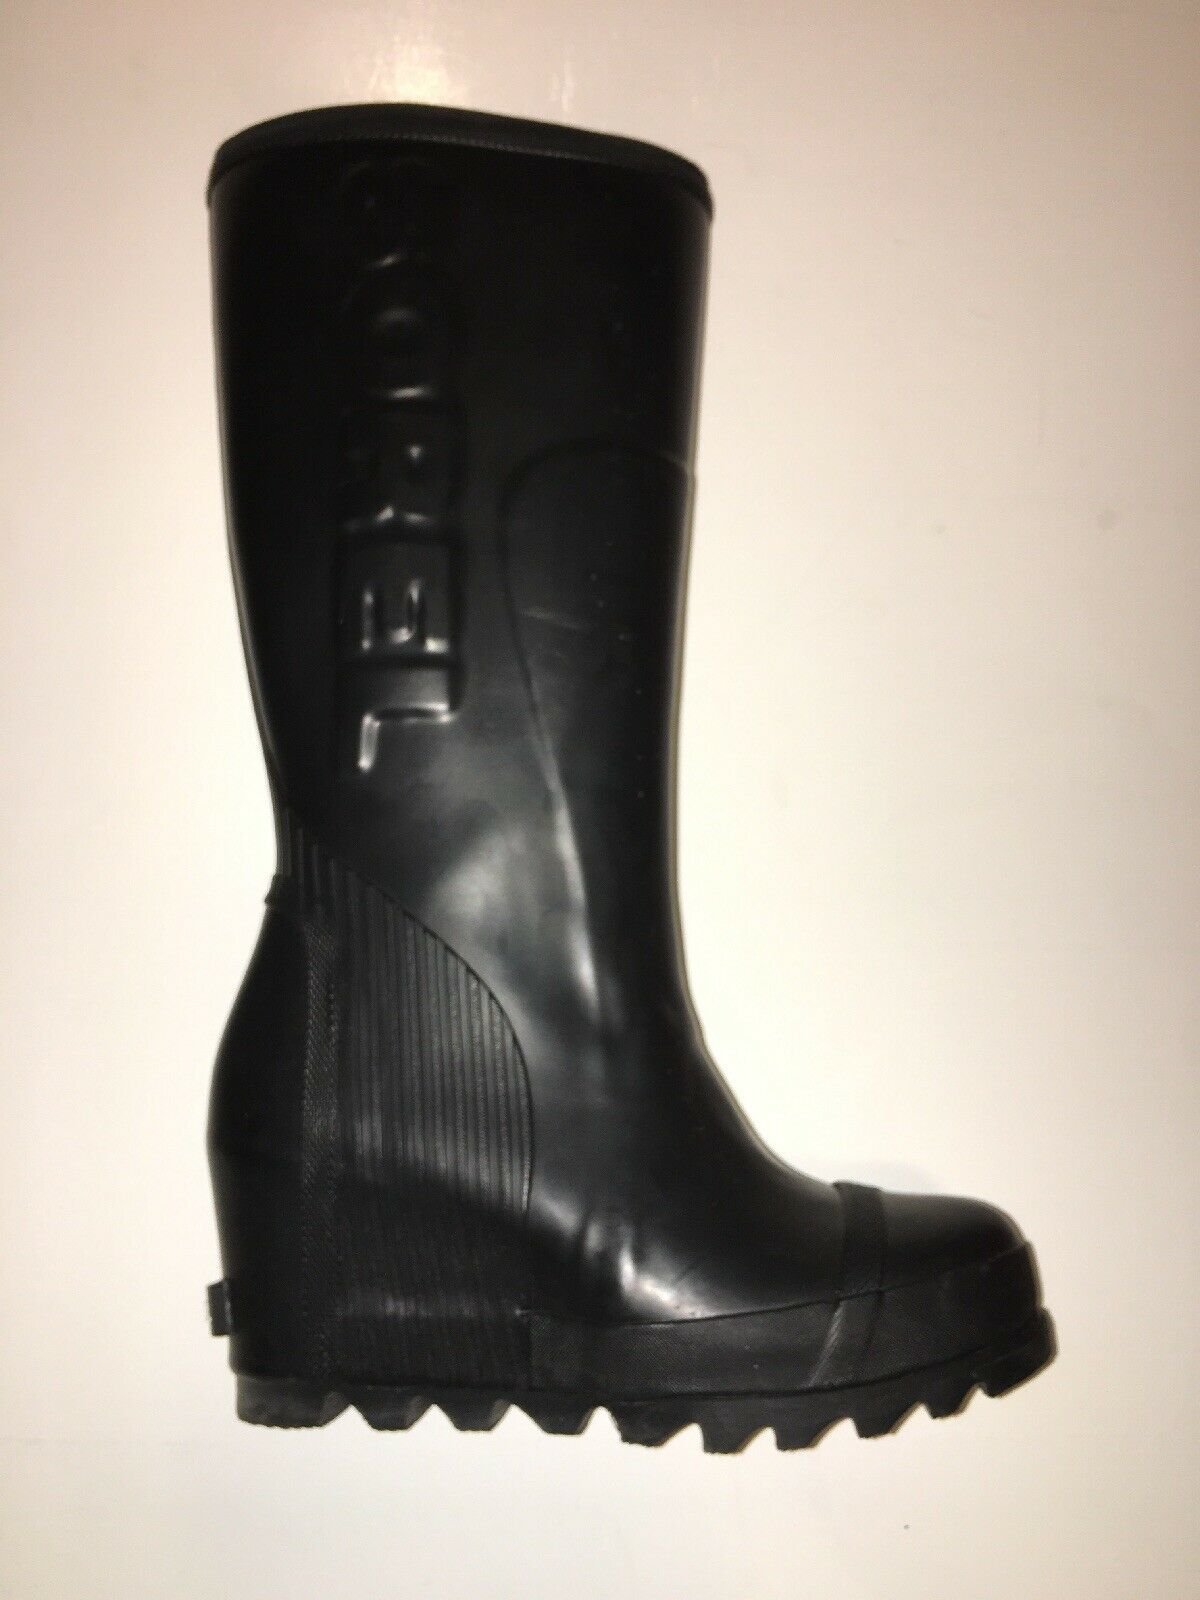 Primary image for Sorel Joan Wedge Rain Tall Black Boot Women's Shoe USA Size 6